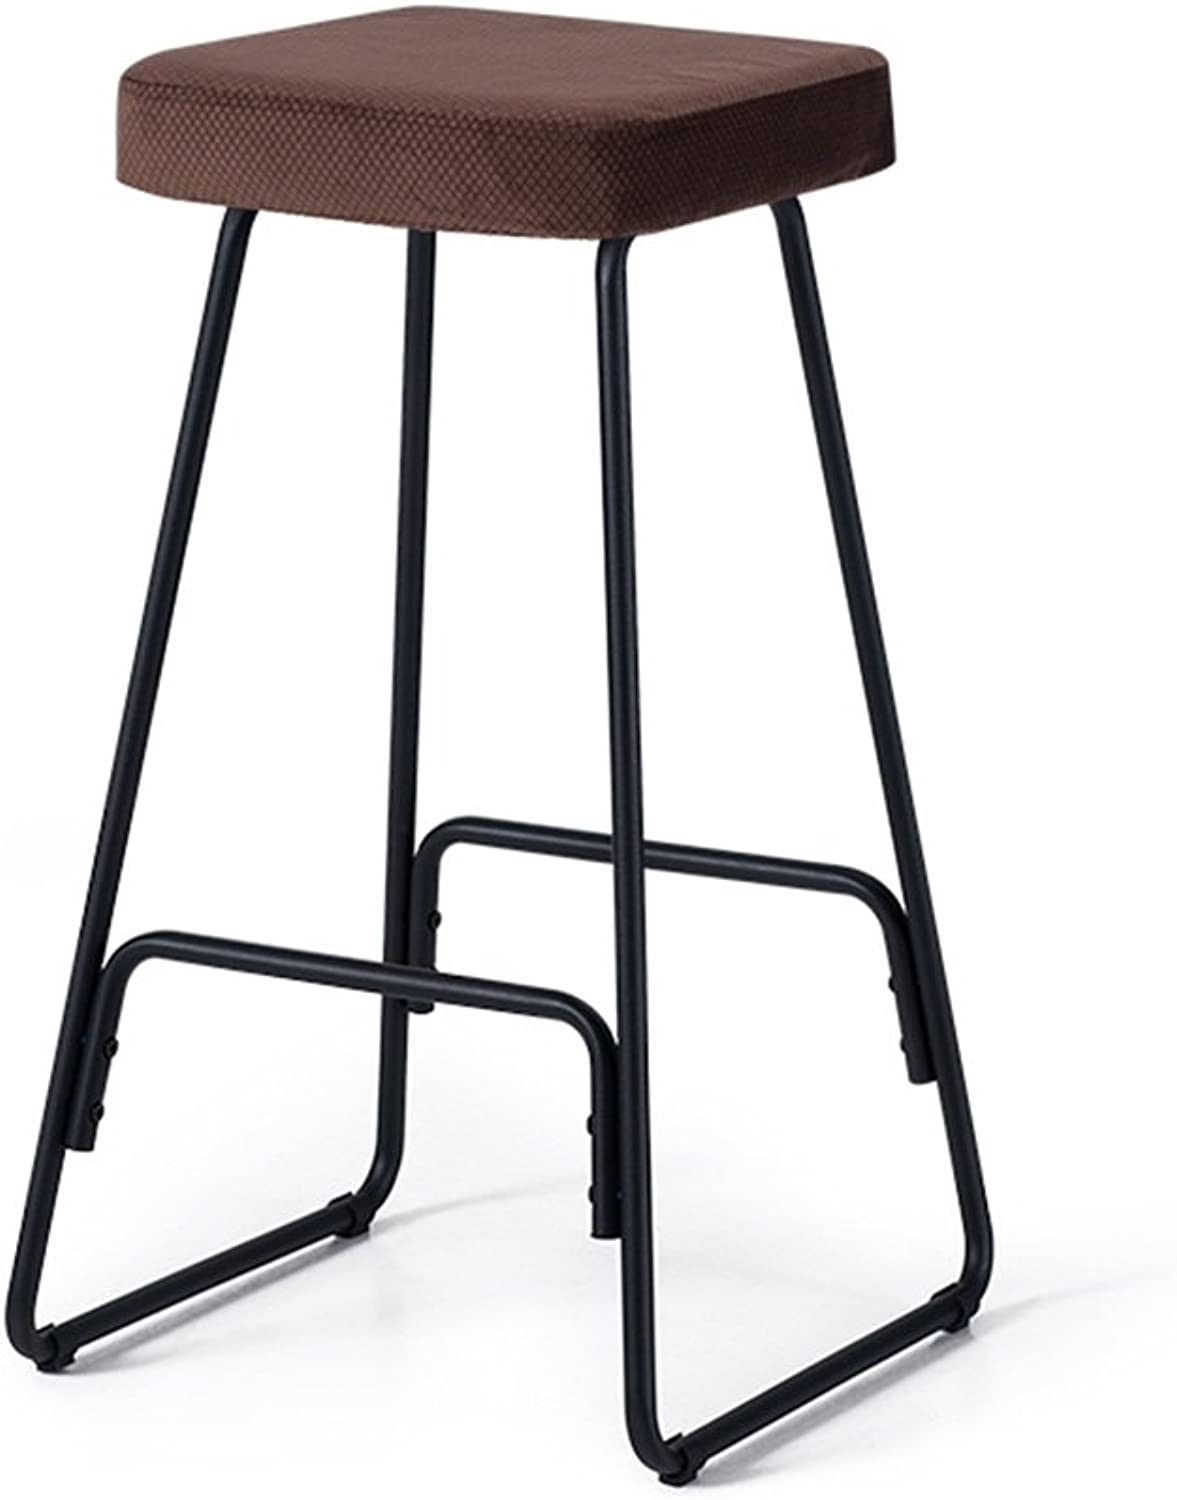 Bar Stool Bar Chair Metal Frame Footrest Stool for Breakfast Kitchen   Pub   Café Barstools Height 67cm with Iron Legs Black (color   Brown)